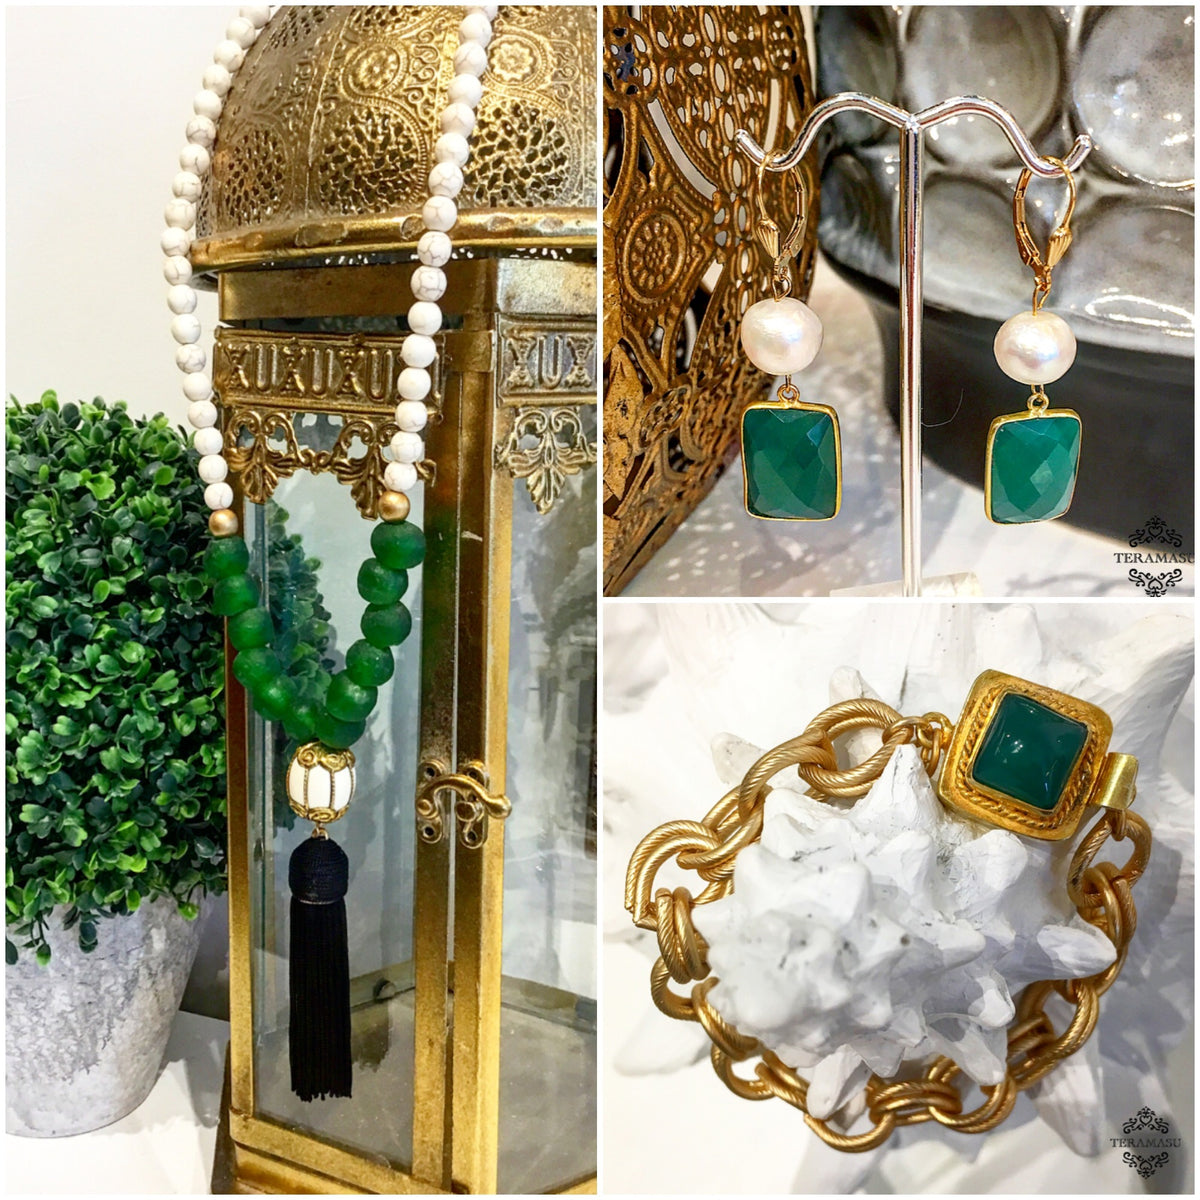 Living Ladylike: The Perfect Green Statement Jewelry Pieces for Your One-of-a-Kind Fall Style from Teramasu